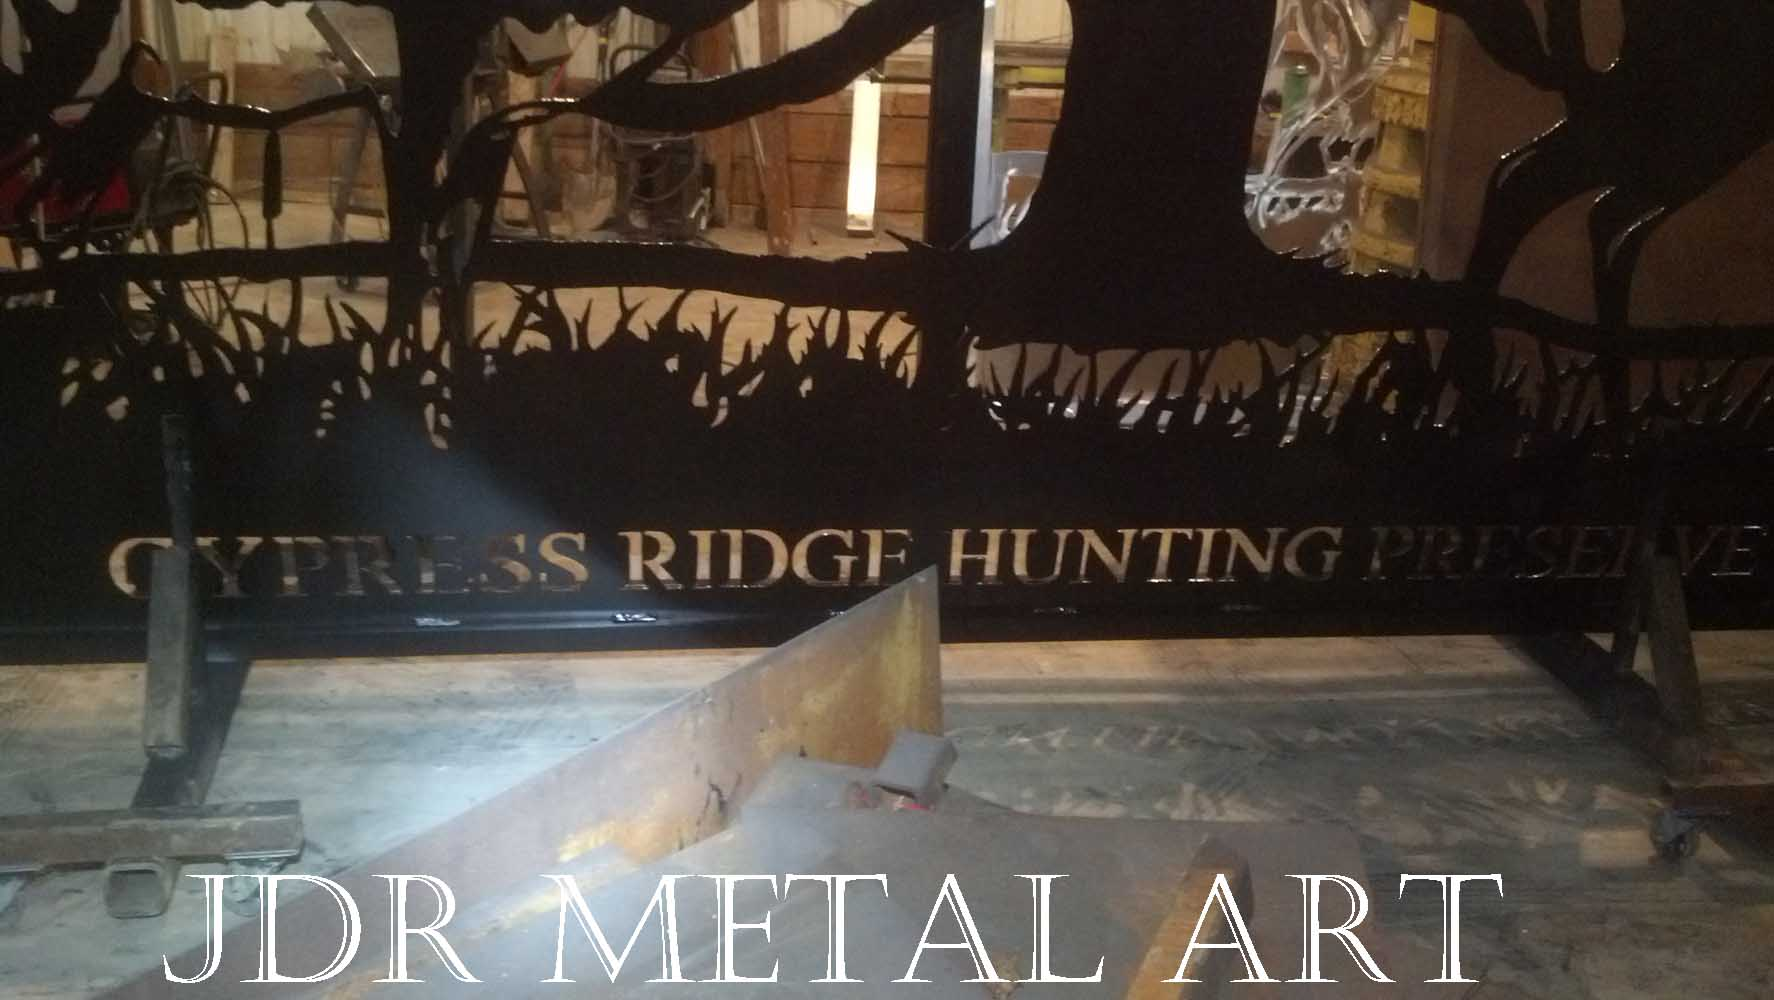 Gate lettering for Cypress Ridge Hunting Preserve in Florida.